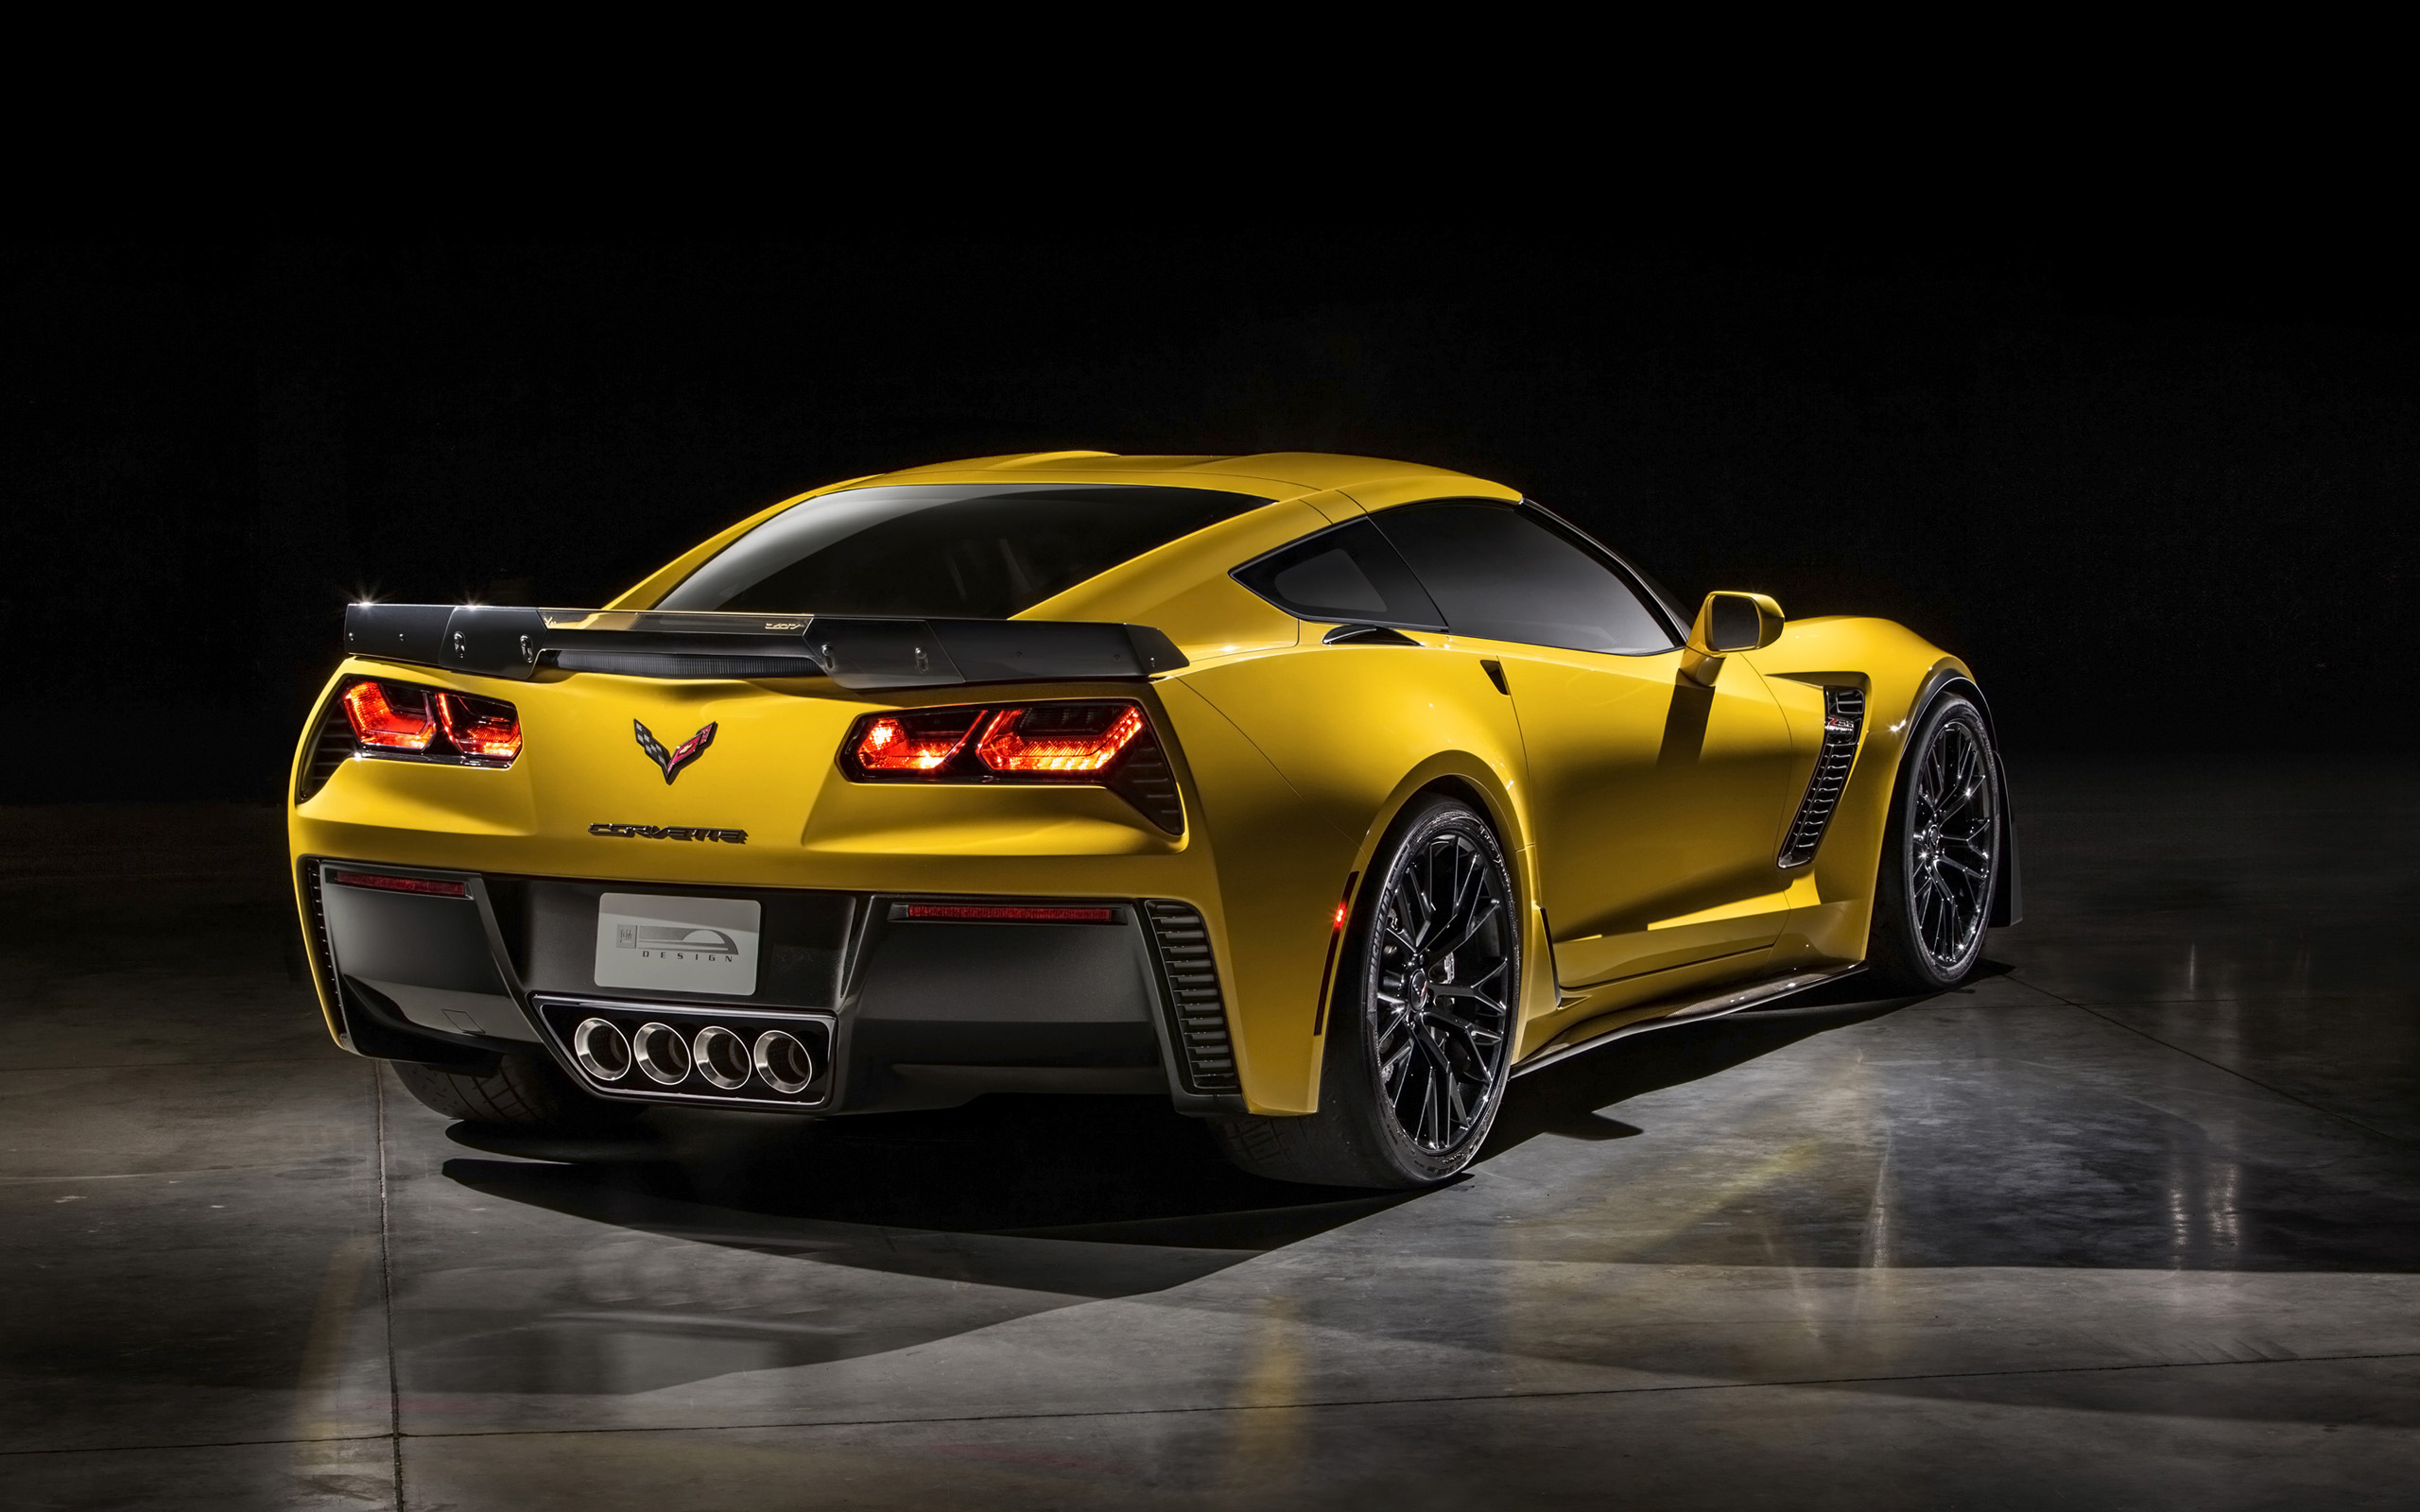 2015 Chevrolet Corvette Z06 2 Wallpaper HD Car Wallpapers 2560x1600